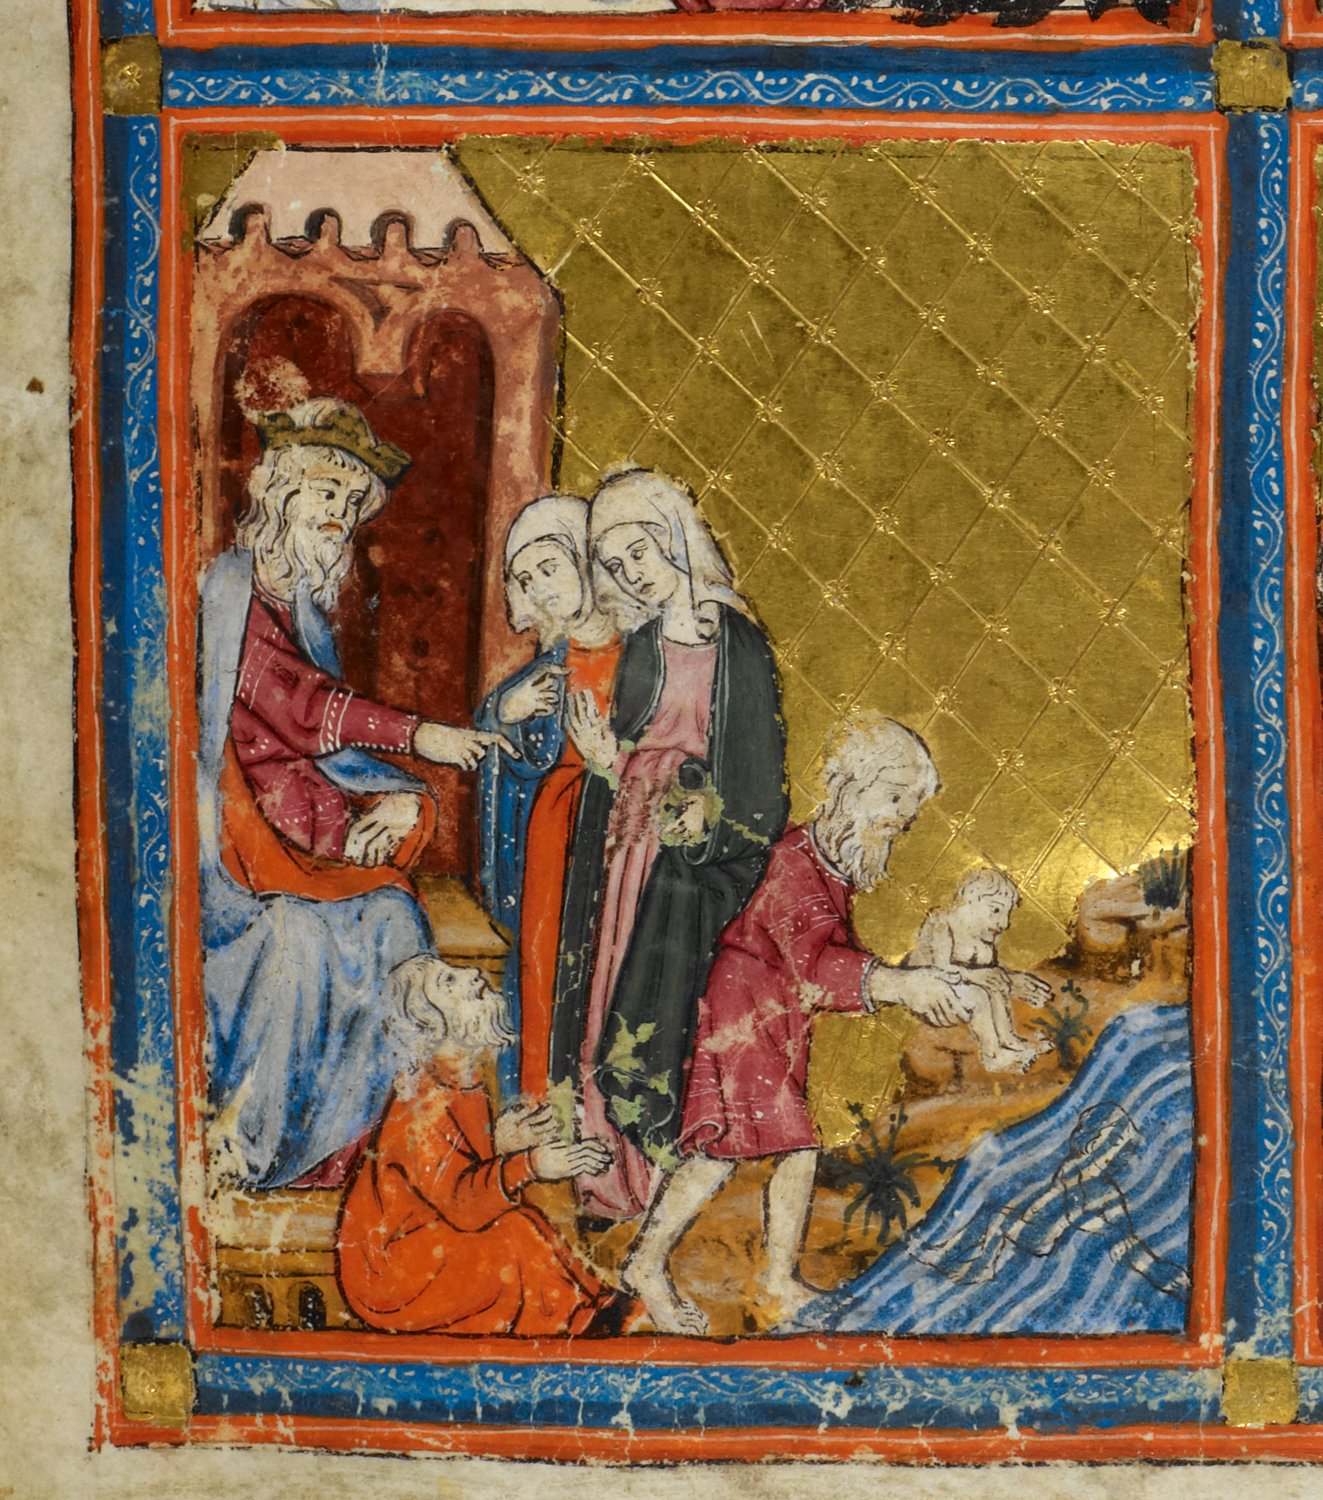 Pharaoh and the Midwives early 14th century Golden Haggadah Catalonia